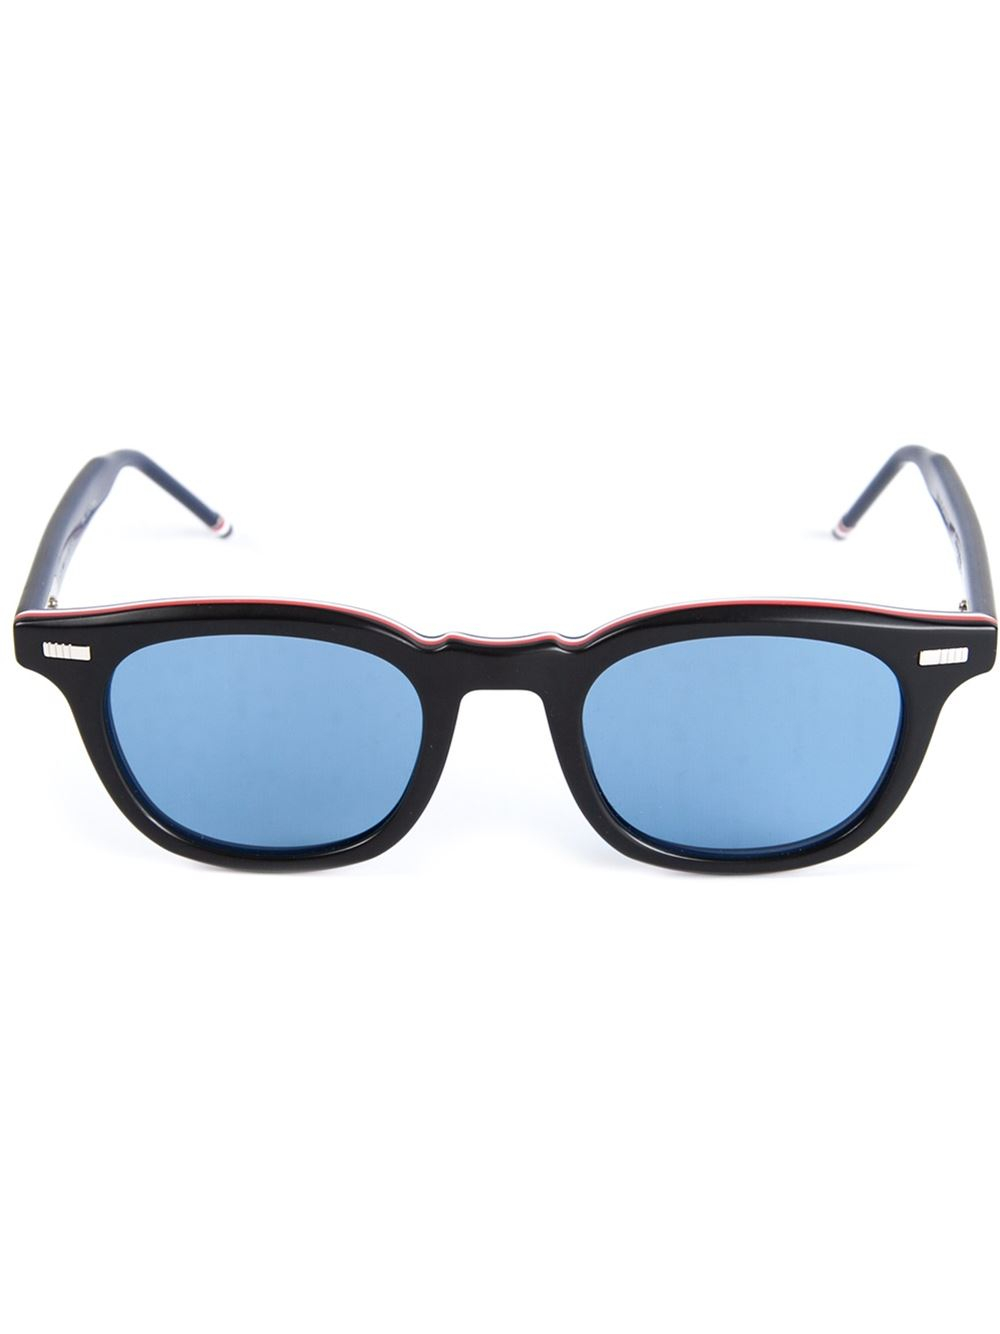 Blue Tinted Sunglasses  thom browne tinted lenses sunglasses in blue for men lyst